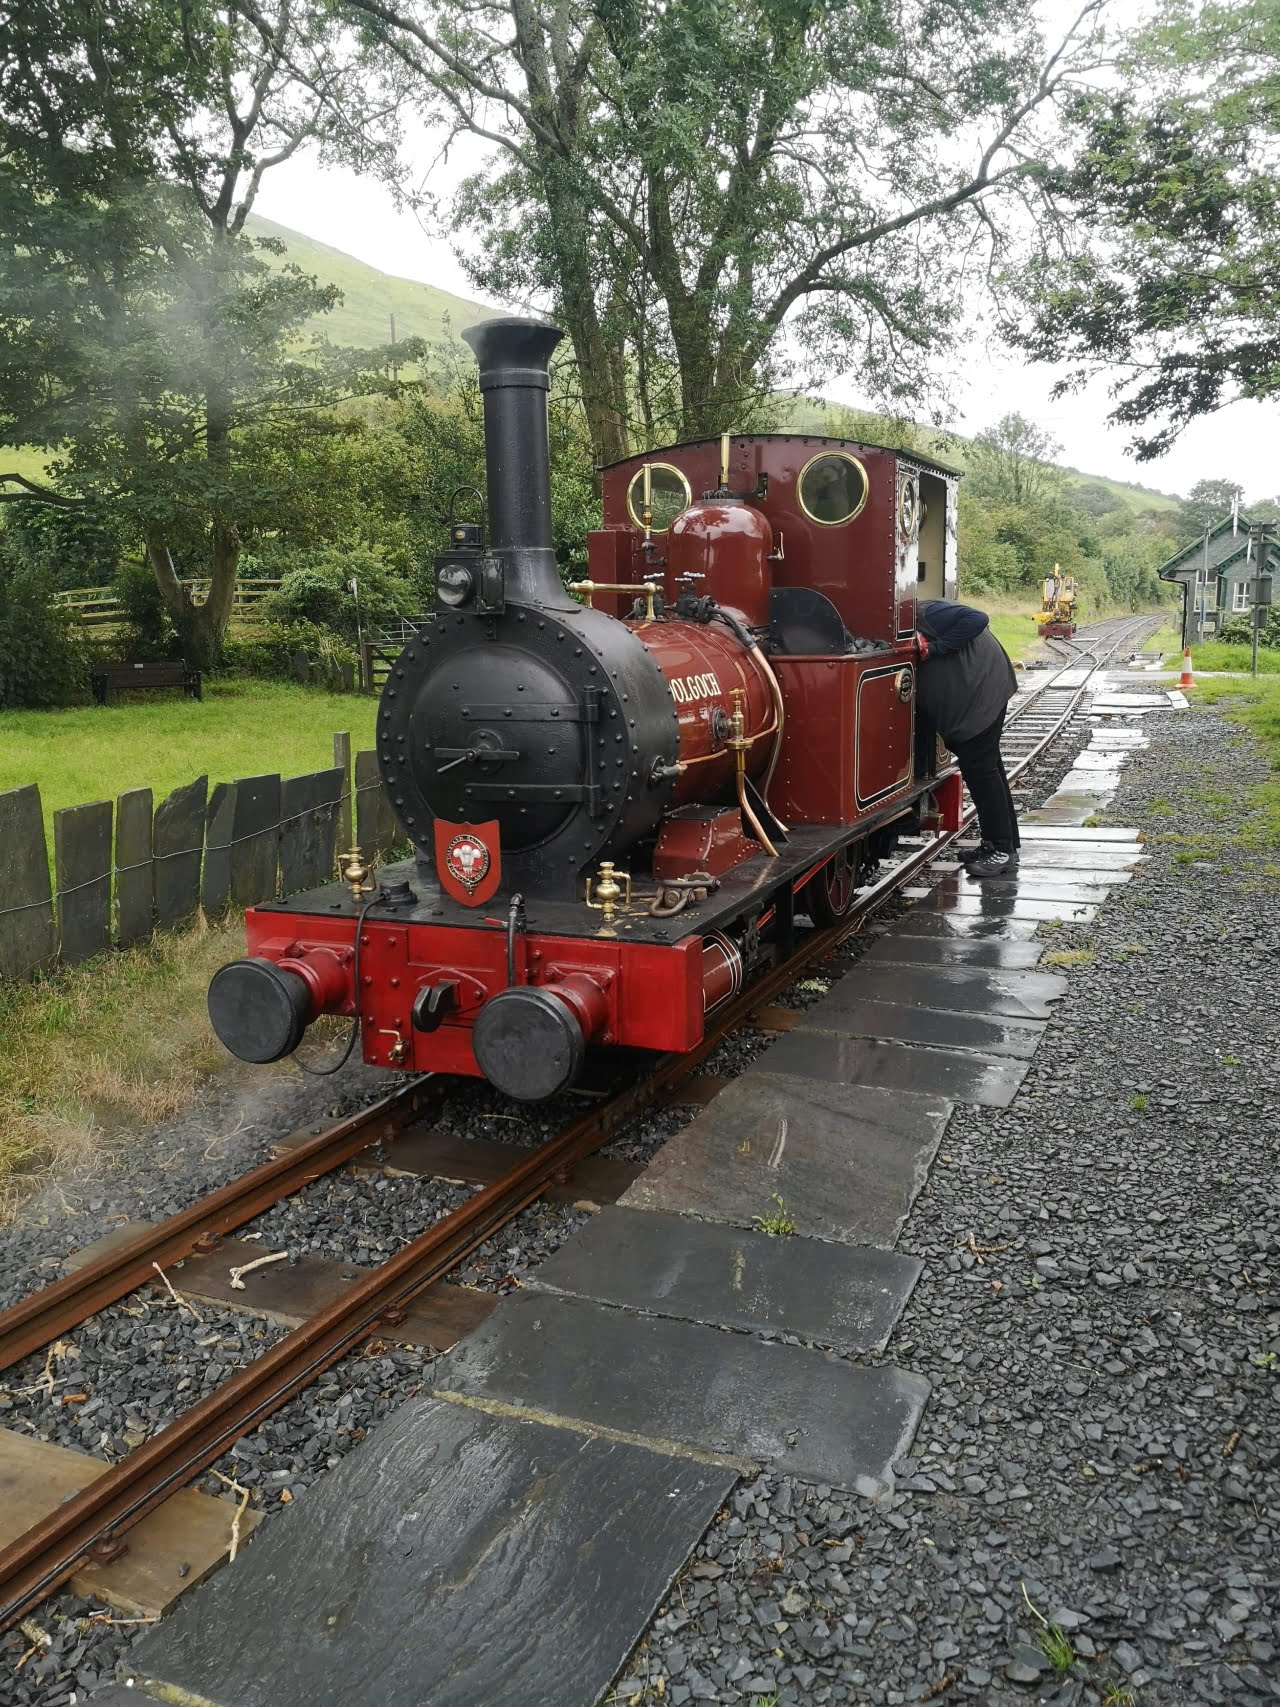 No 2 Dolgoch on test at Rhydyronen